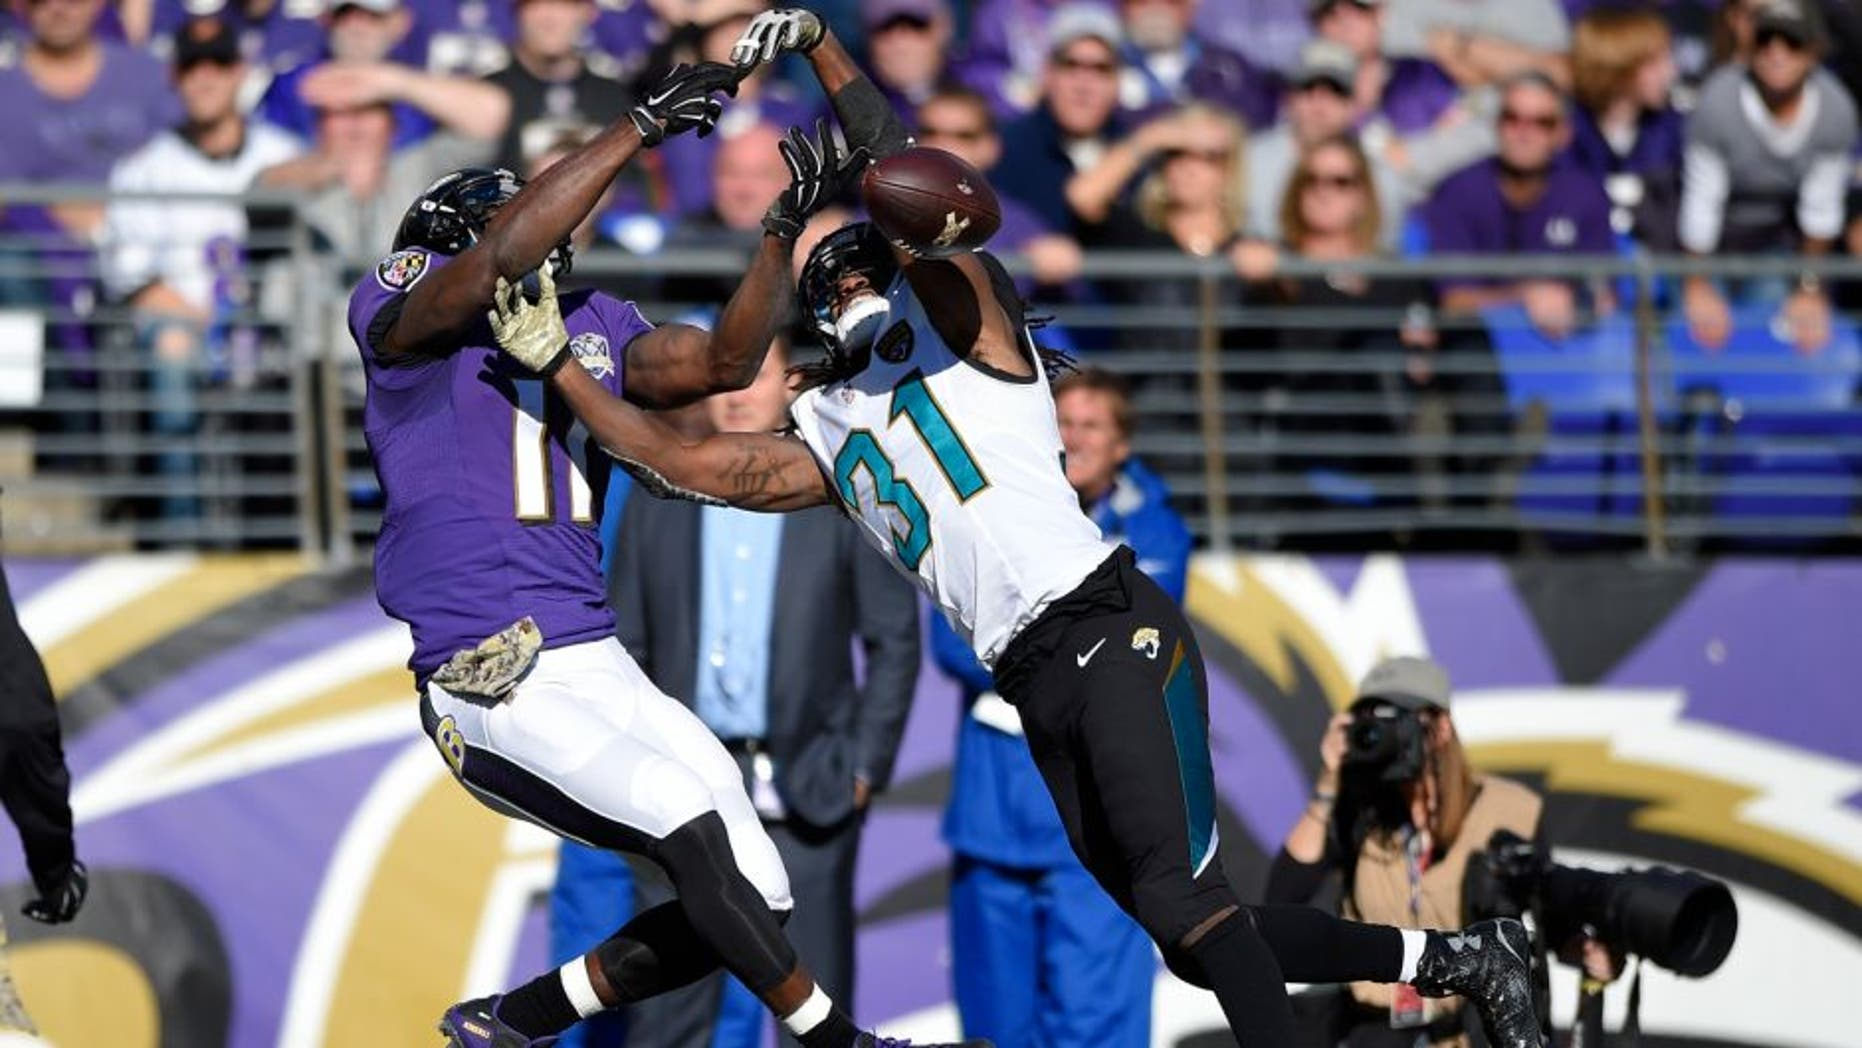 Jacksonville Jaguars cornerback Davon House, right, breaks up a pass-attempt to Baltimore Ravens wide receiver Kamar Aiken in the first half an NFL football game, Sunday, Nov. 15, 2015, in Baltimore. (AP Photo/Nick Wass)